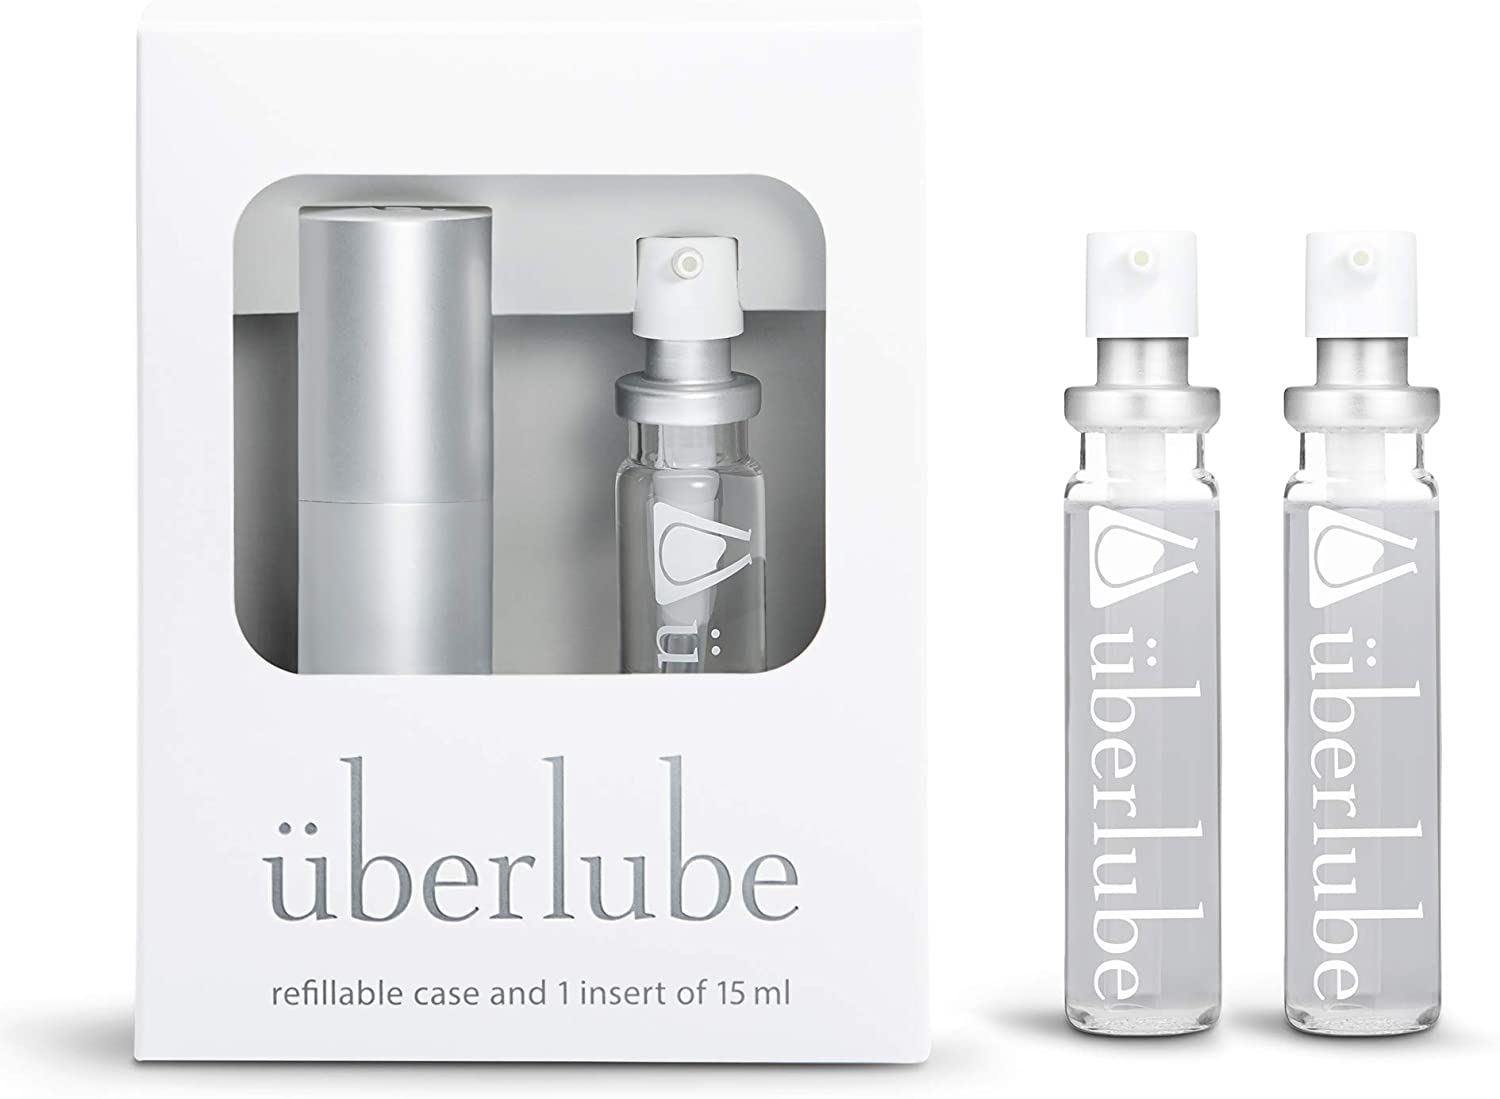 Überlube Good-to-go Travel Lube Set + Two Refills   Latex-Safe Natural Silicone Lube for Sex with Vitamin E   Unscented, Flavorless, Zero Residue, Works Underwater Silver Kit+ 2 Refills (45ml Total) : Health & Household